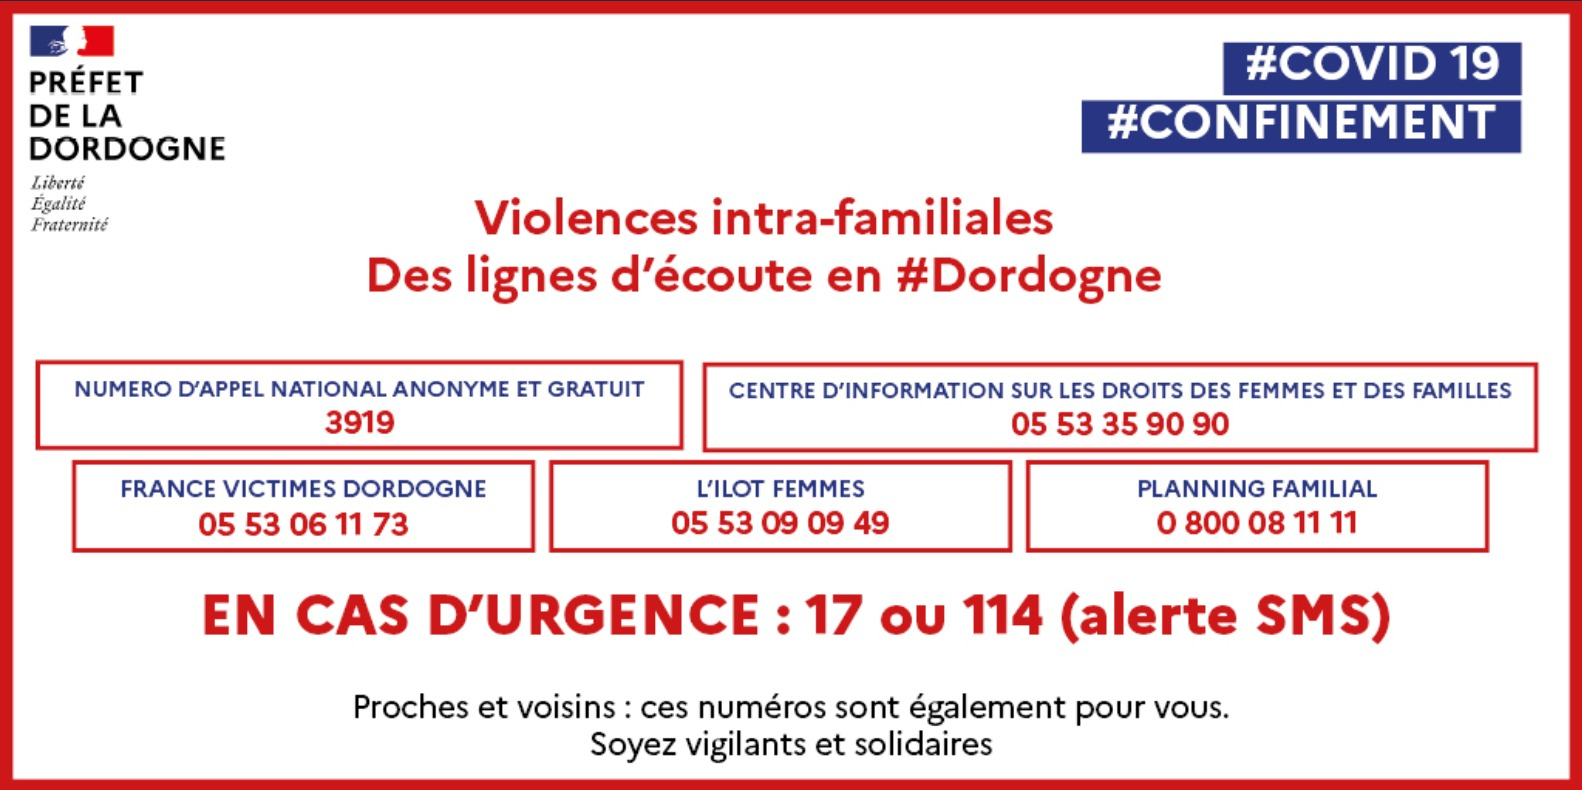 Violences Intra-familiales pendant le confinement